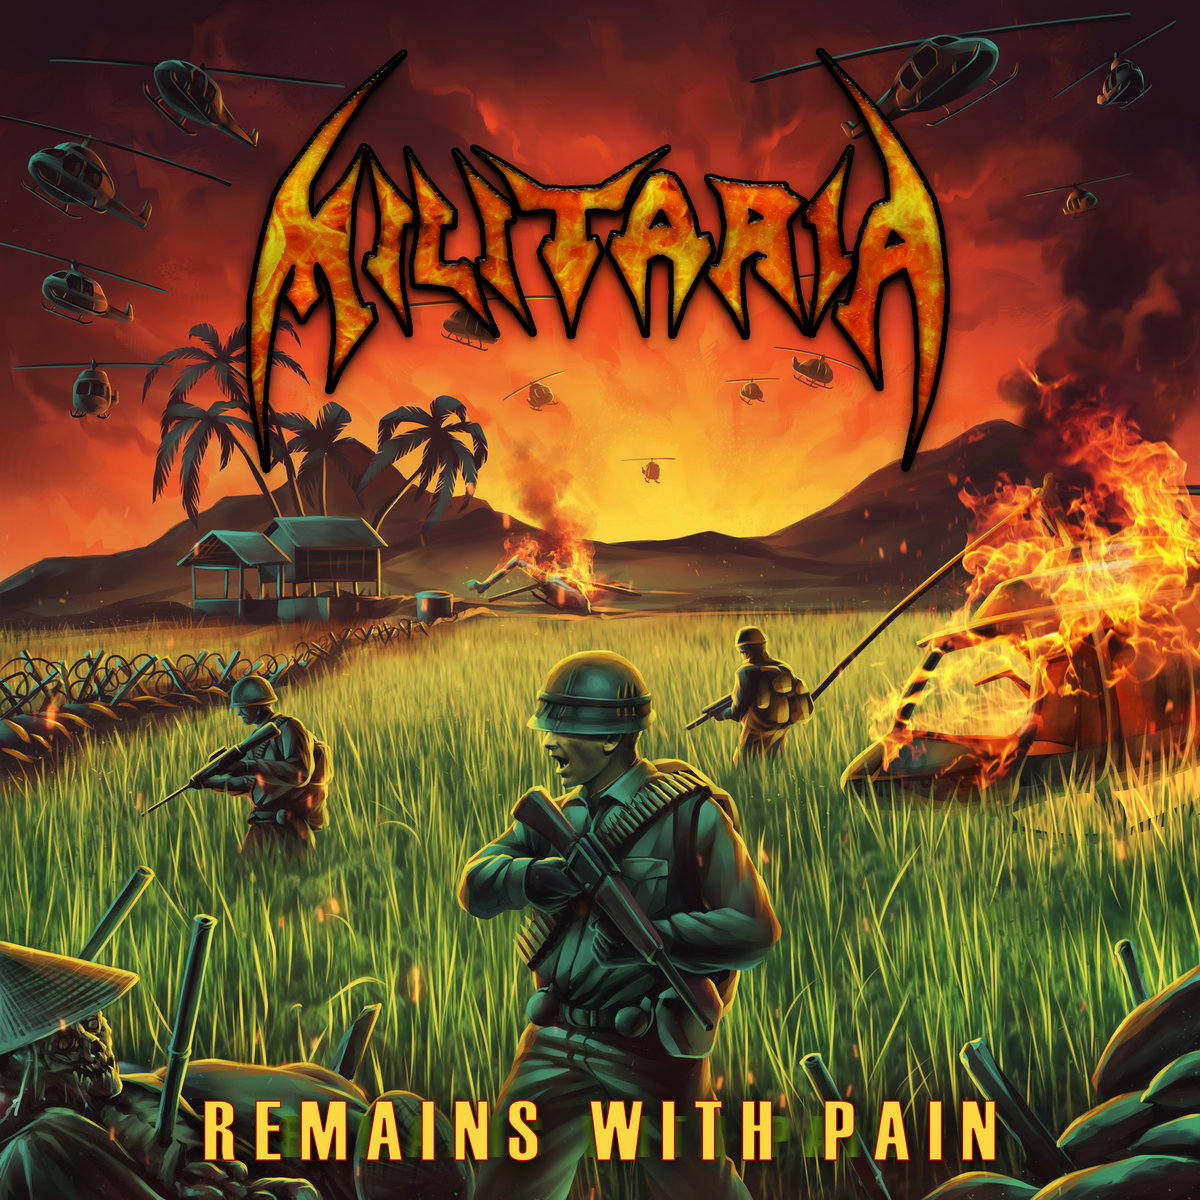 Militaria - Remains With Pain